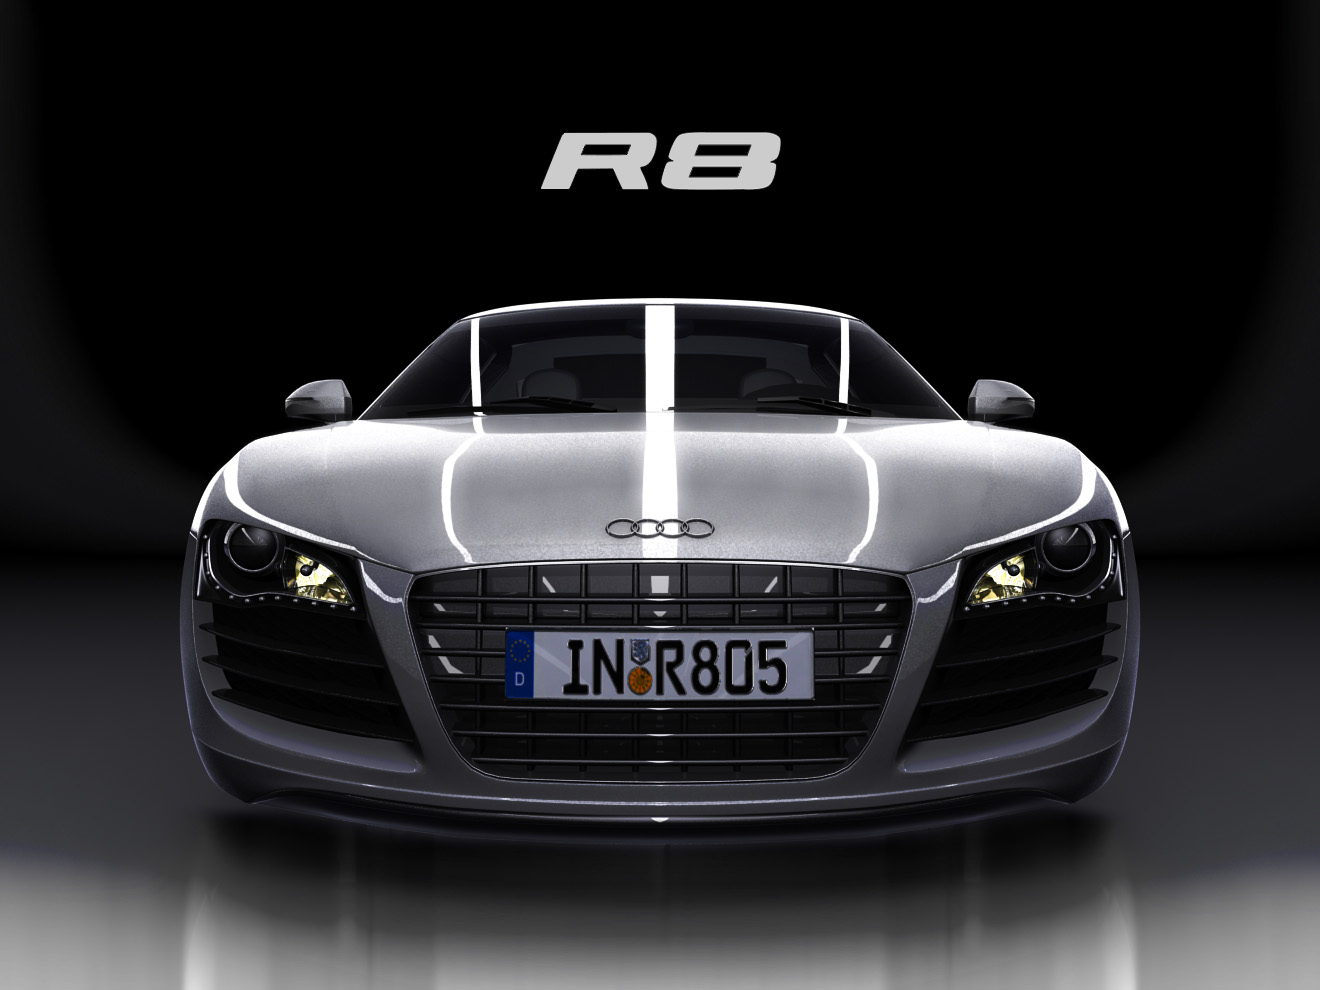 Labels: Audi R8 Pricing